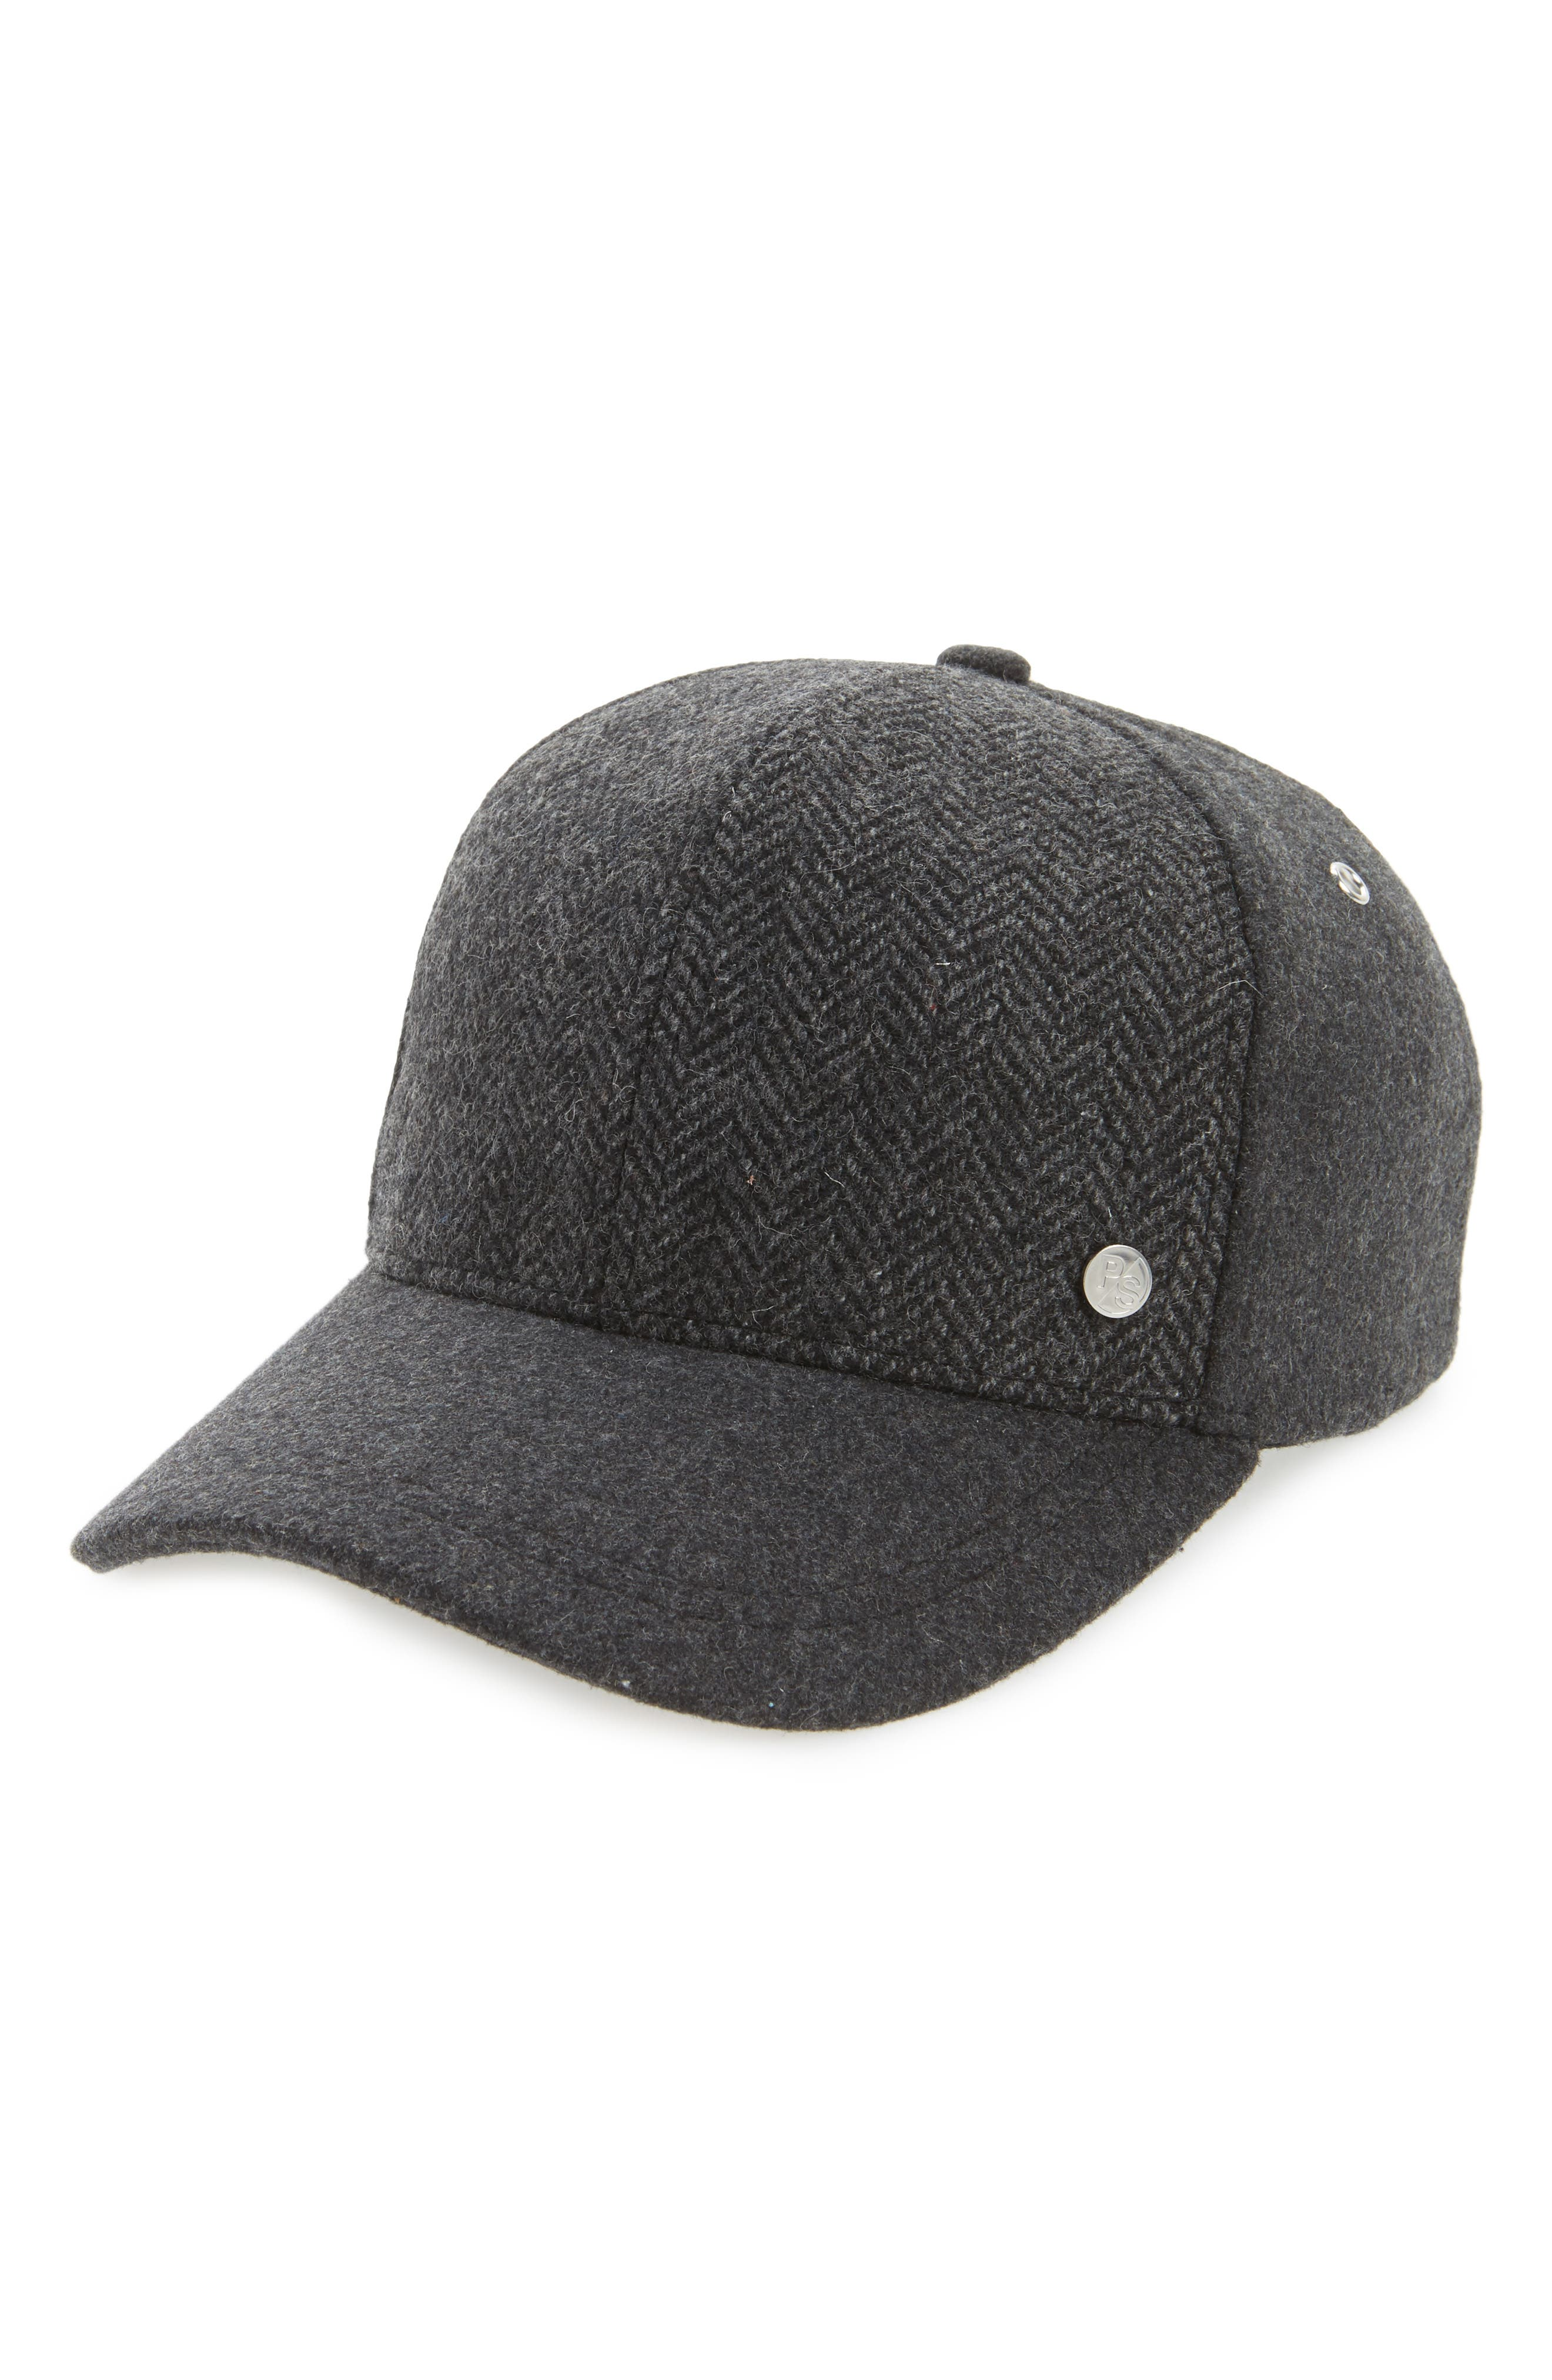 Herringbone Baseball Cap,                         Main,                         color, 021